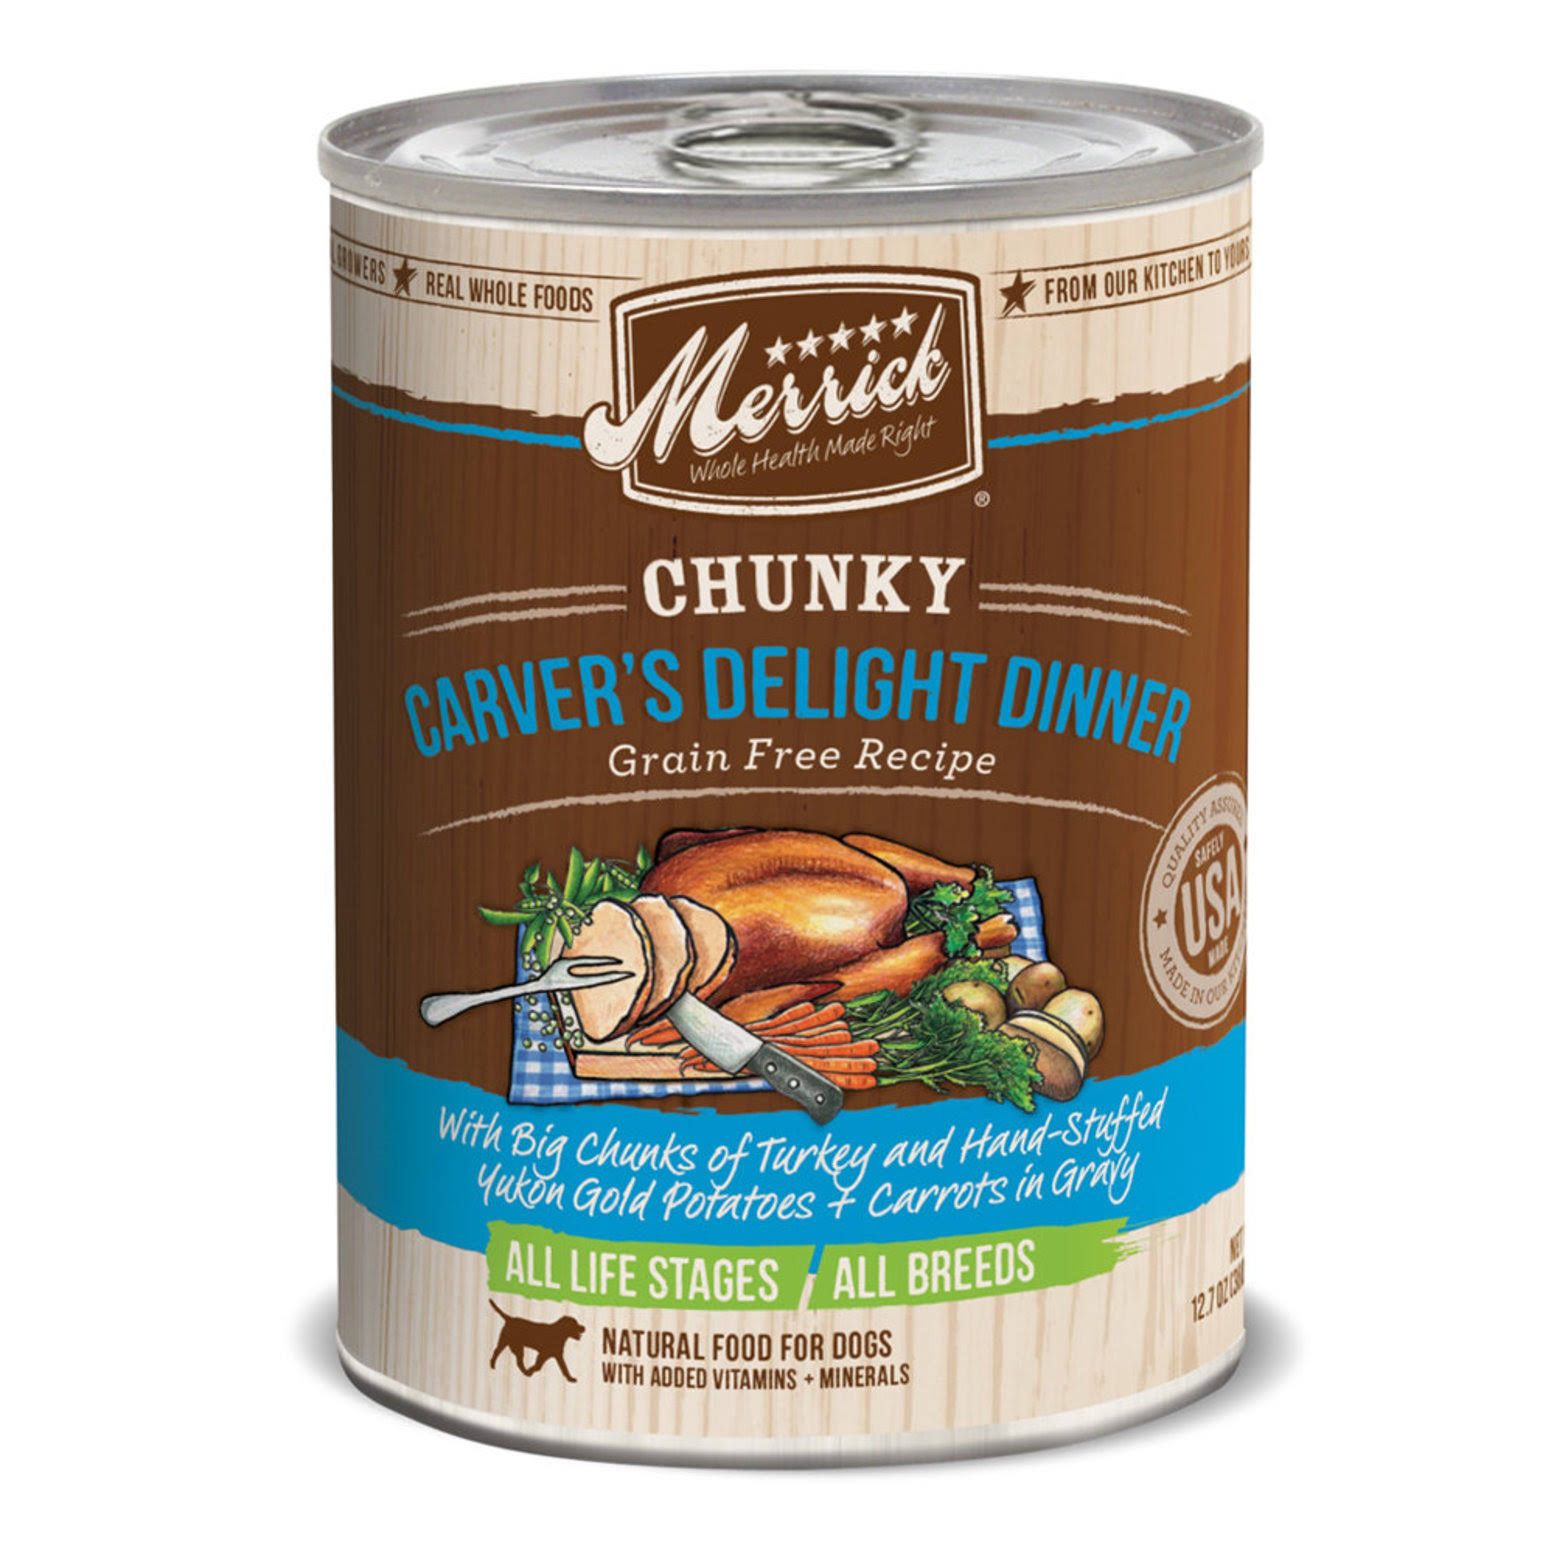 Merrick Chunky Grain-Free Carver's Delight Dinner Canned Dog Food